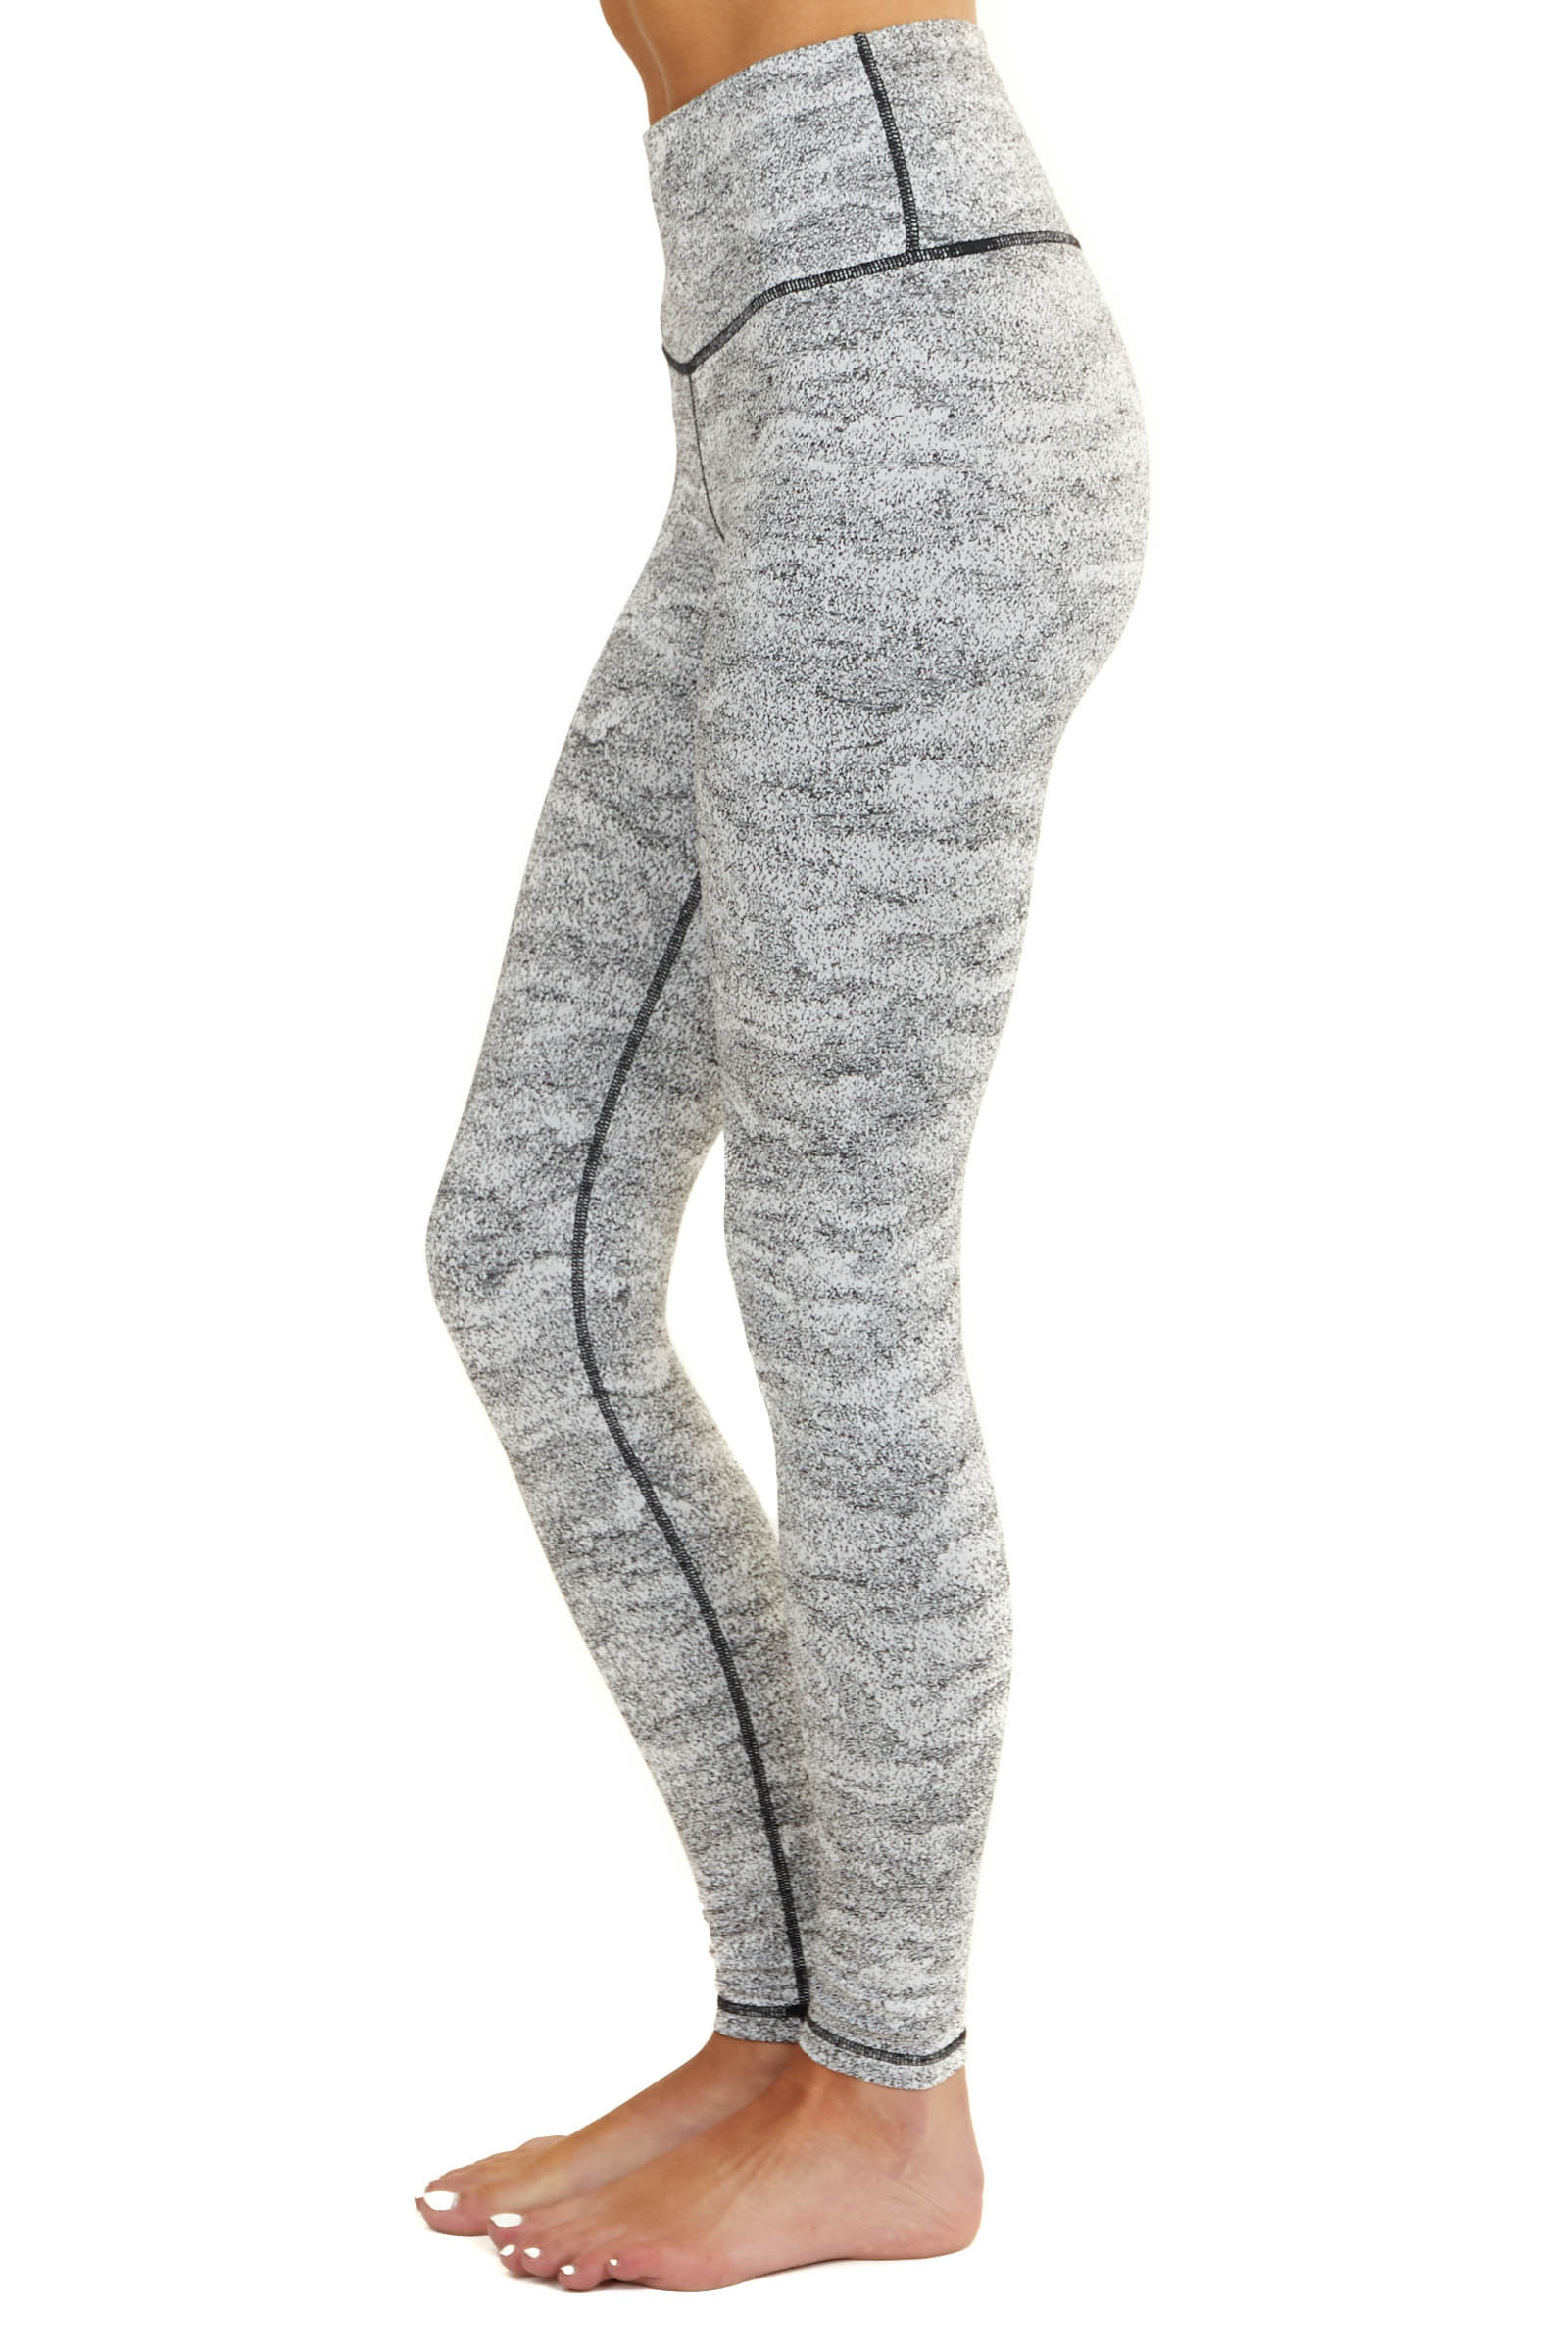 Black and White Printed Knit Leggings with Hidden Pocket